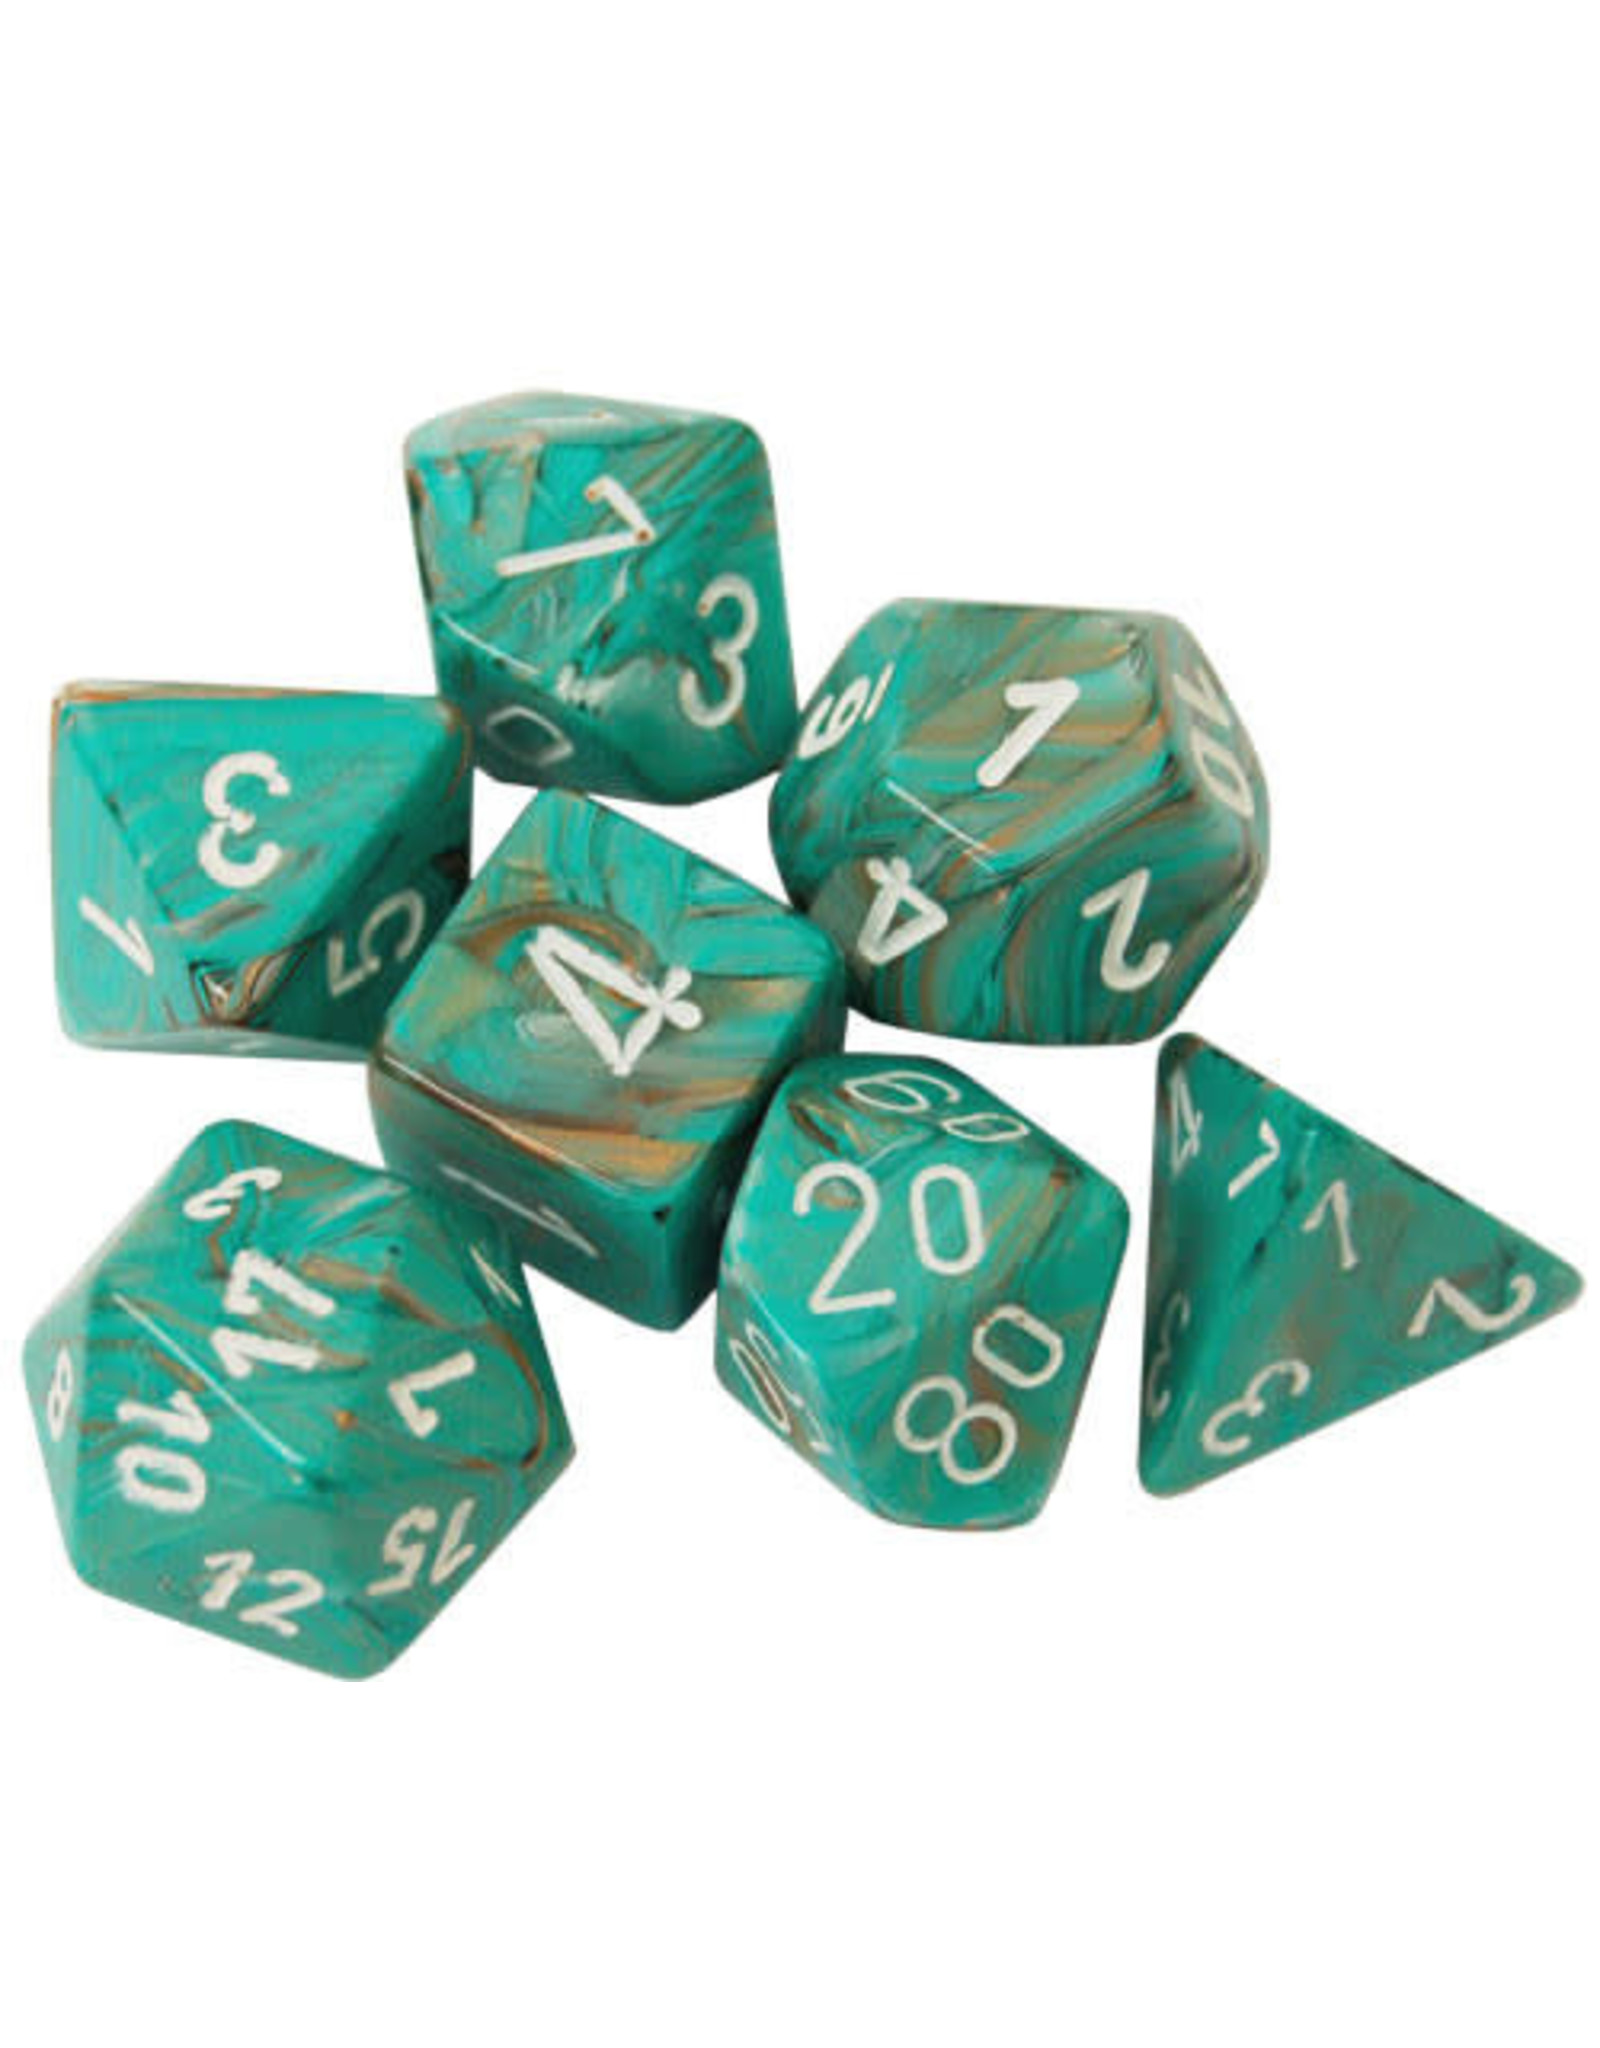 Chessex Dice: 7-Set Cube Marble Oxi-Copper with White Numbers (Chessex)